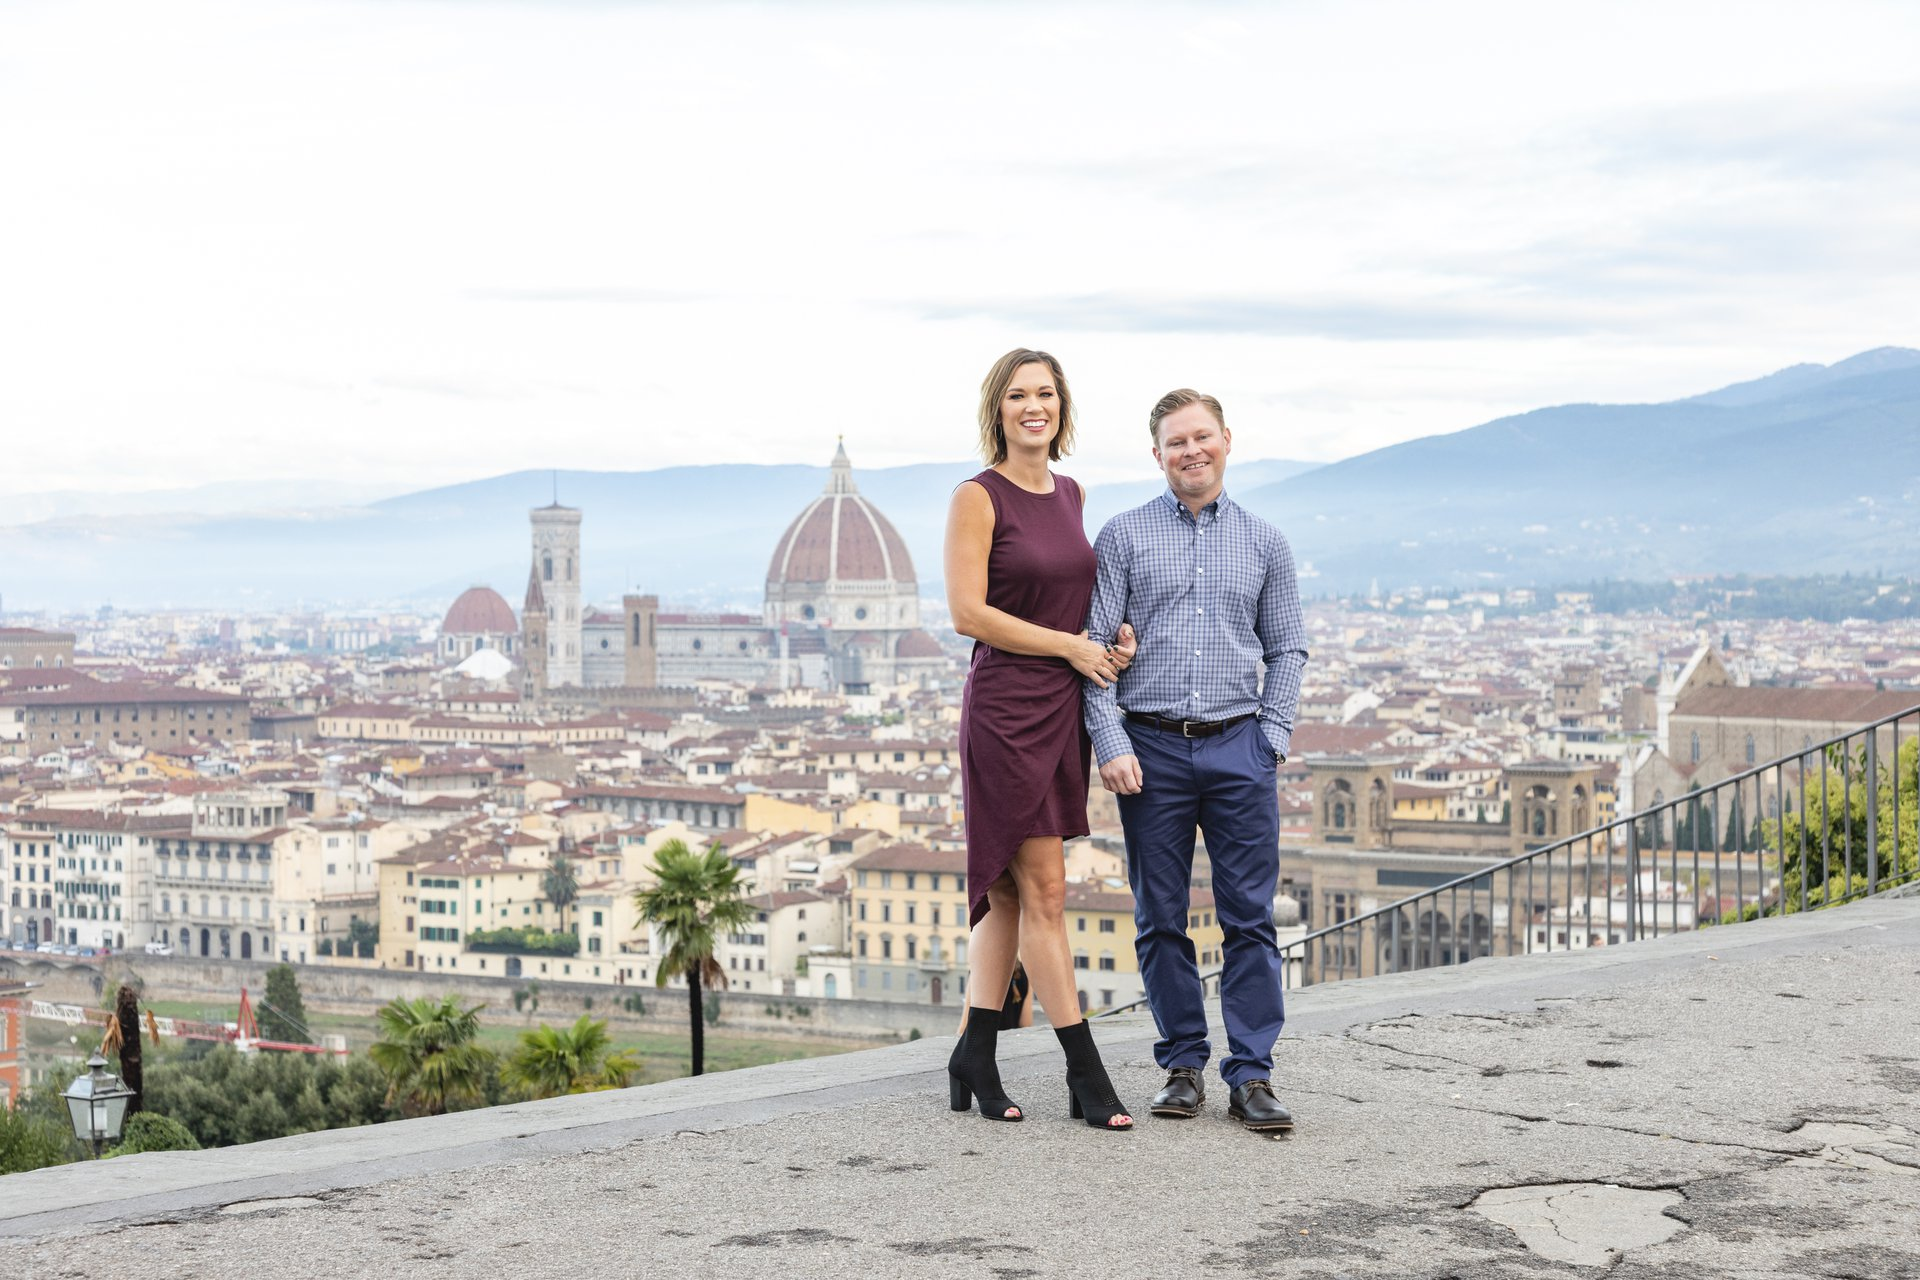 Flytographer Travel Story - Florence